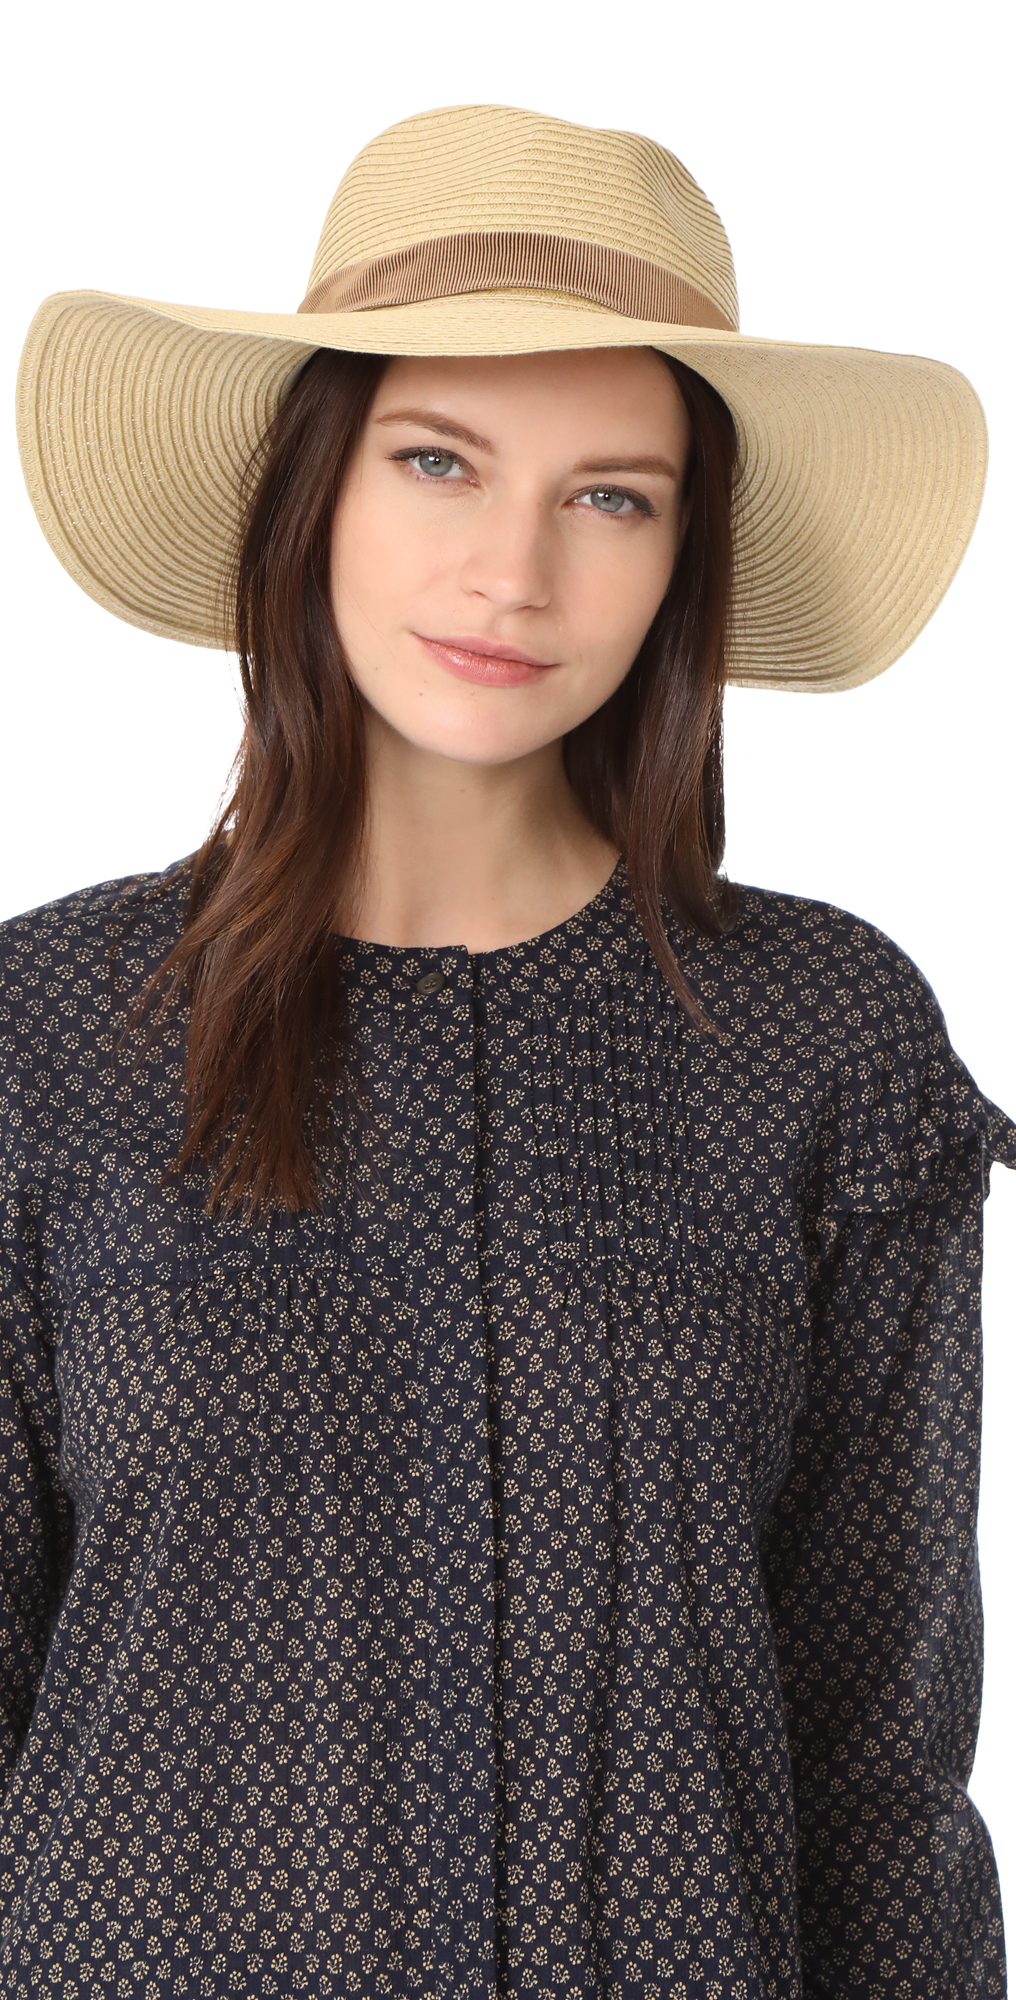 Stitched Packable Straw Hat Madewell